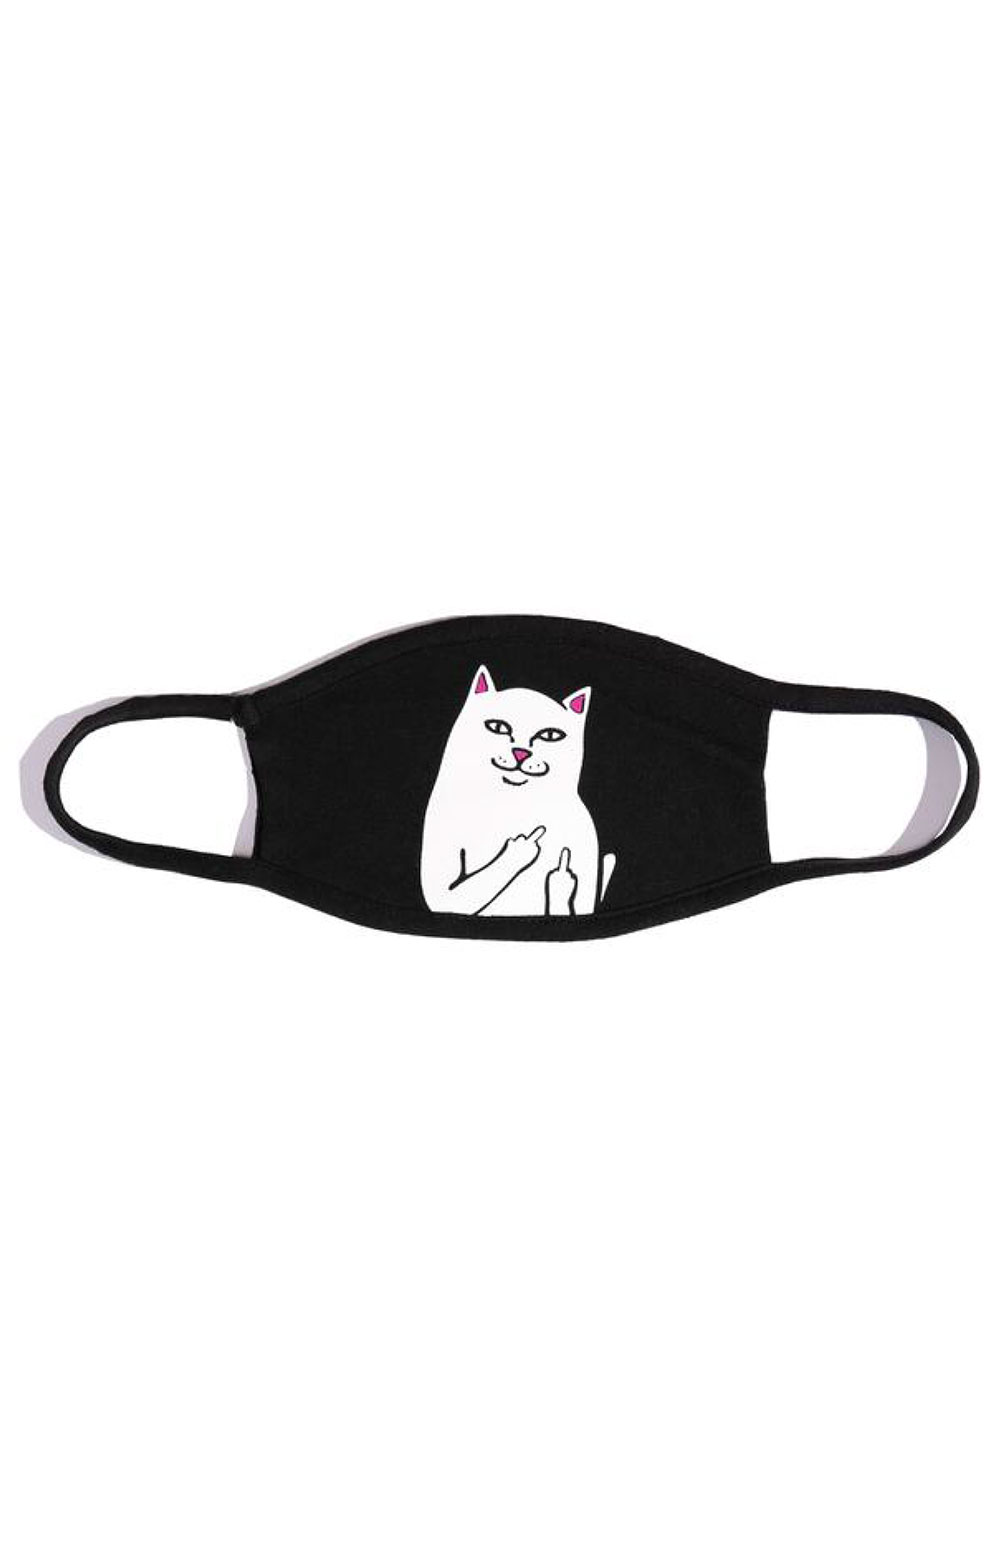 Lord Nermal Face Mask